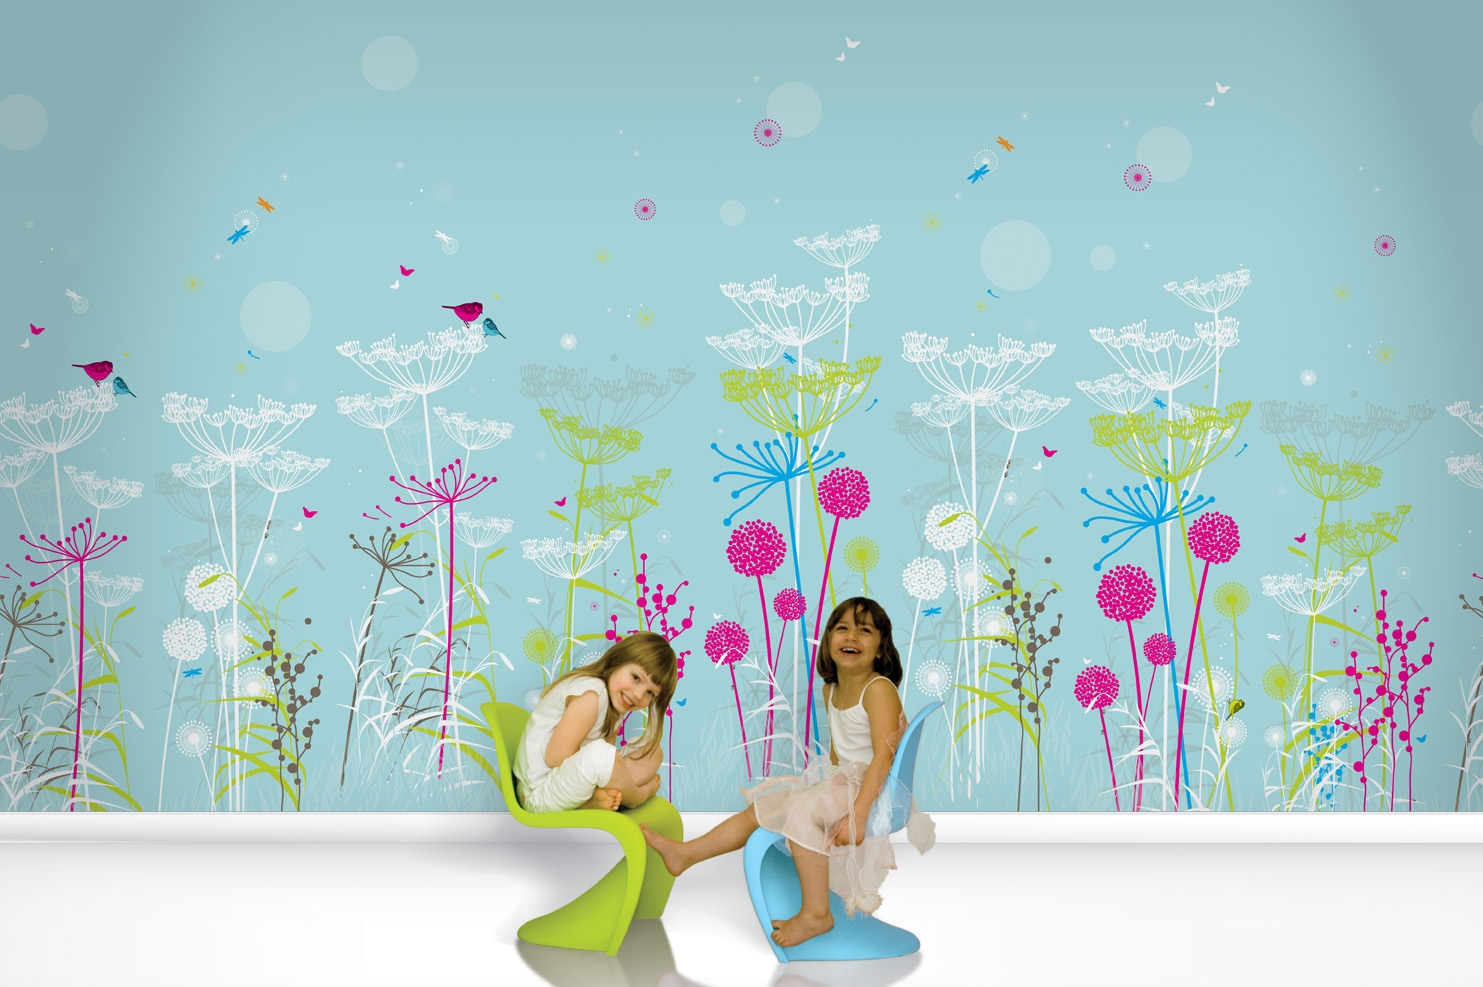 24 kids wallpapers images pictures design trends for Childrens mural wallpaper